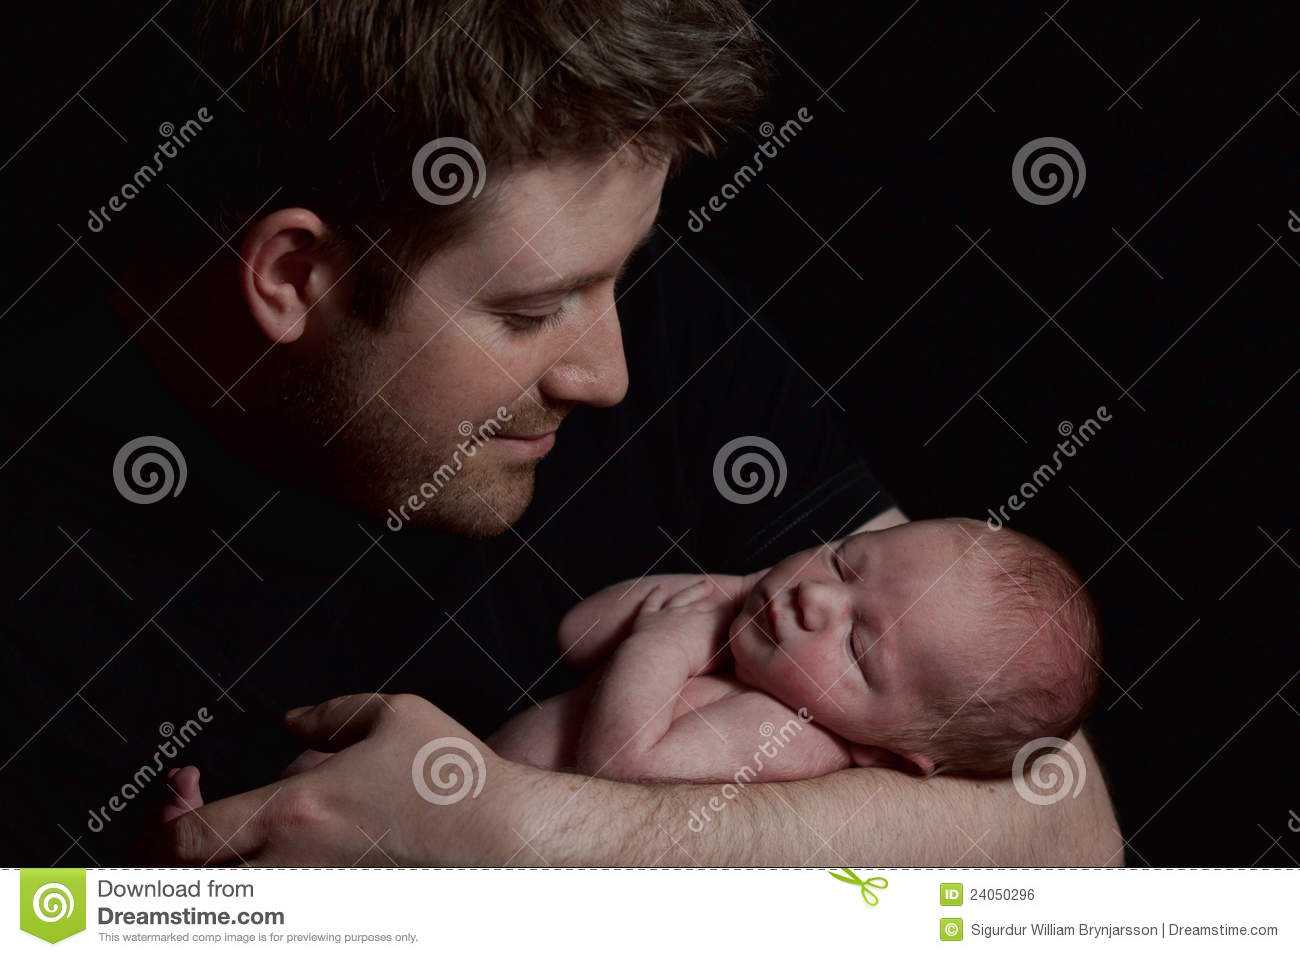 A man holding an infant